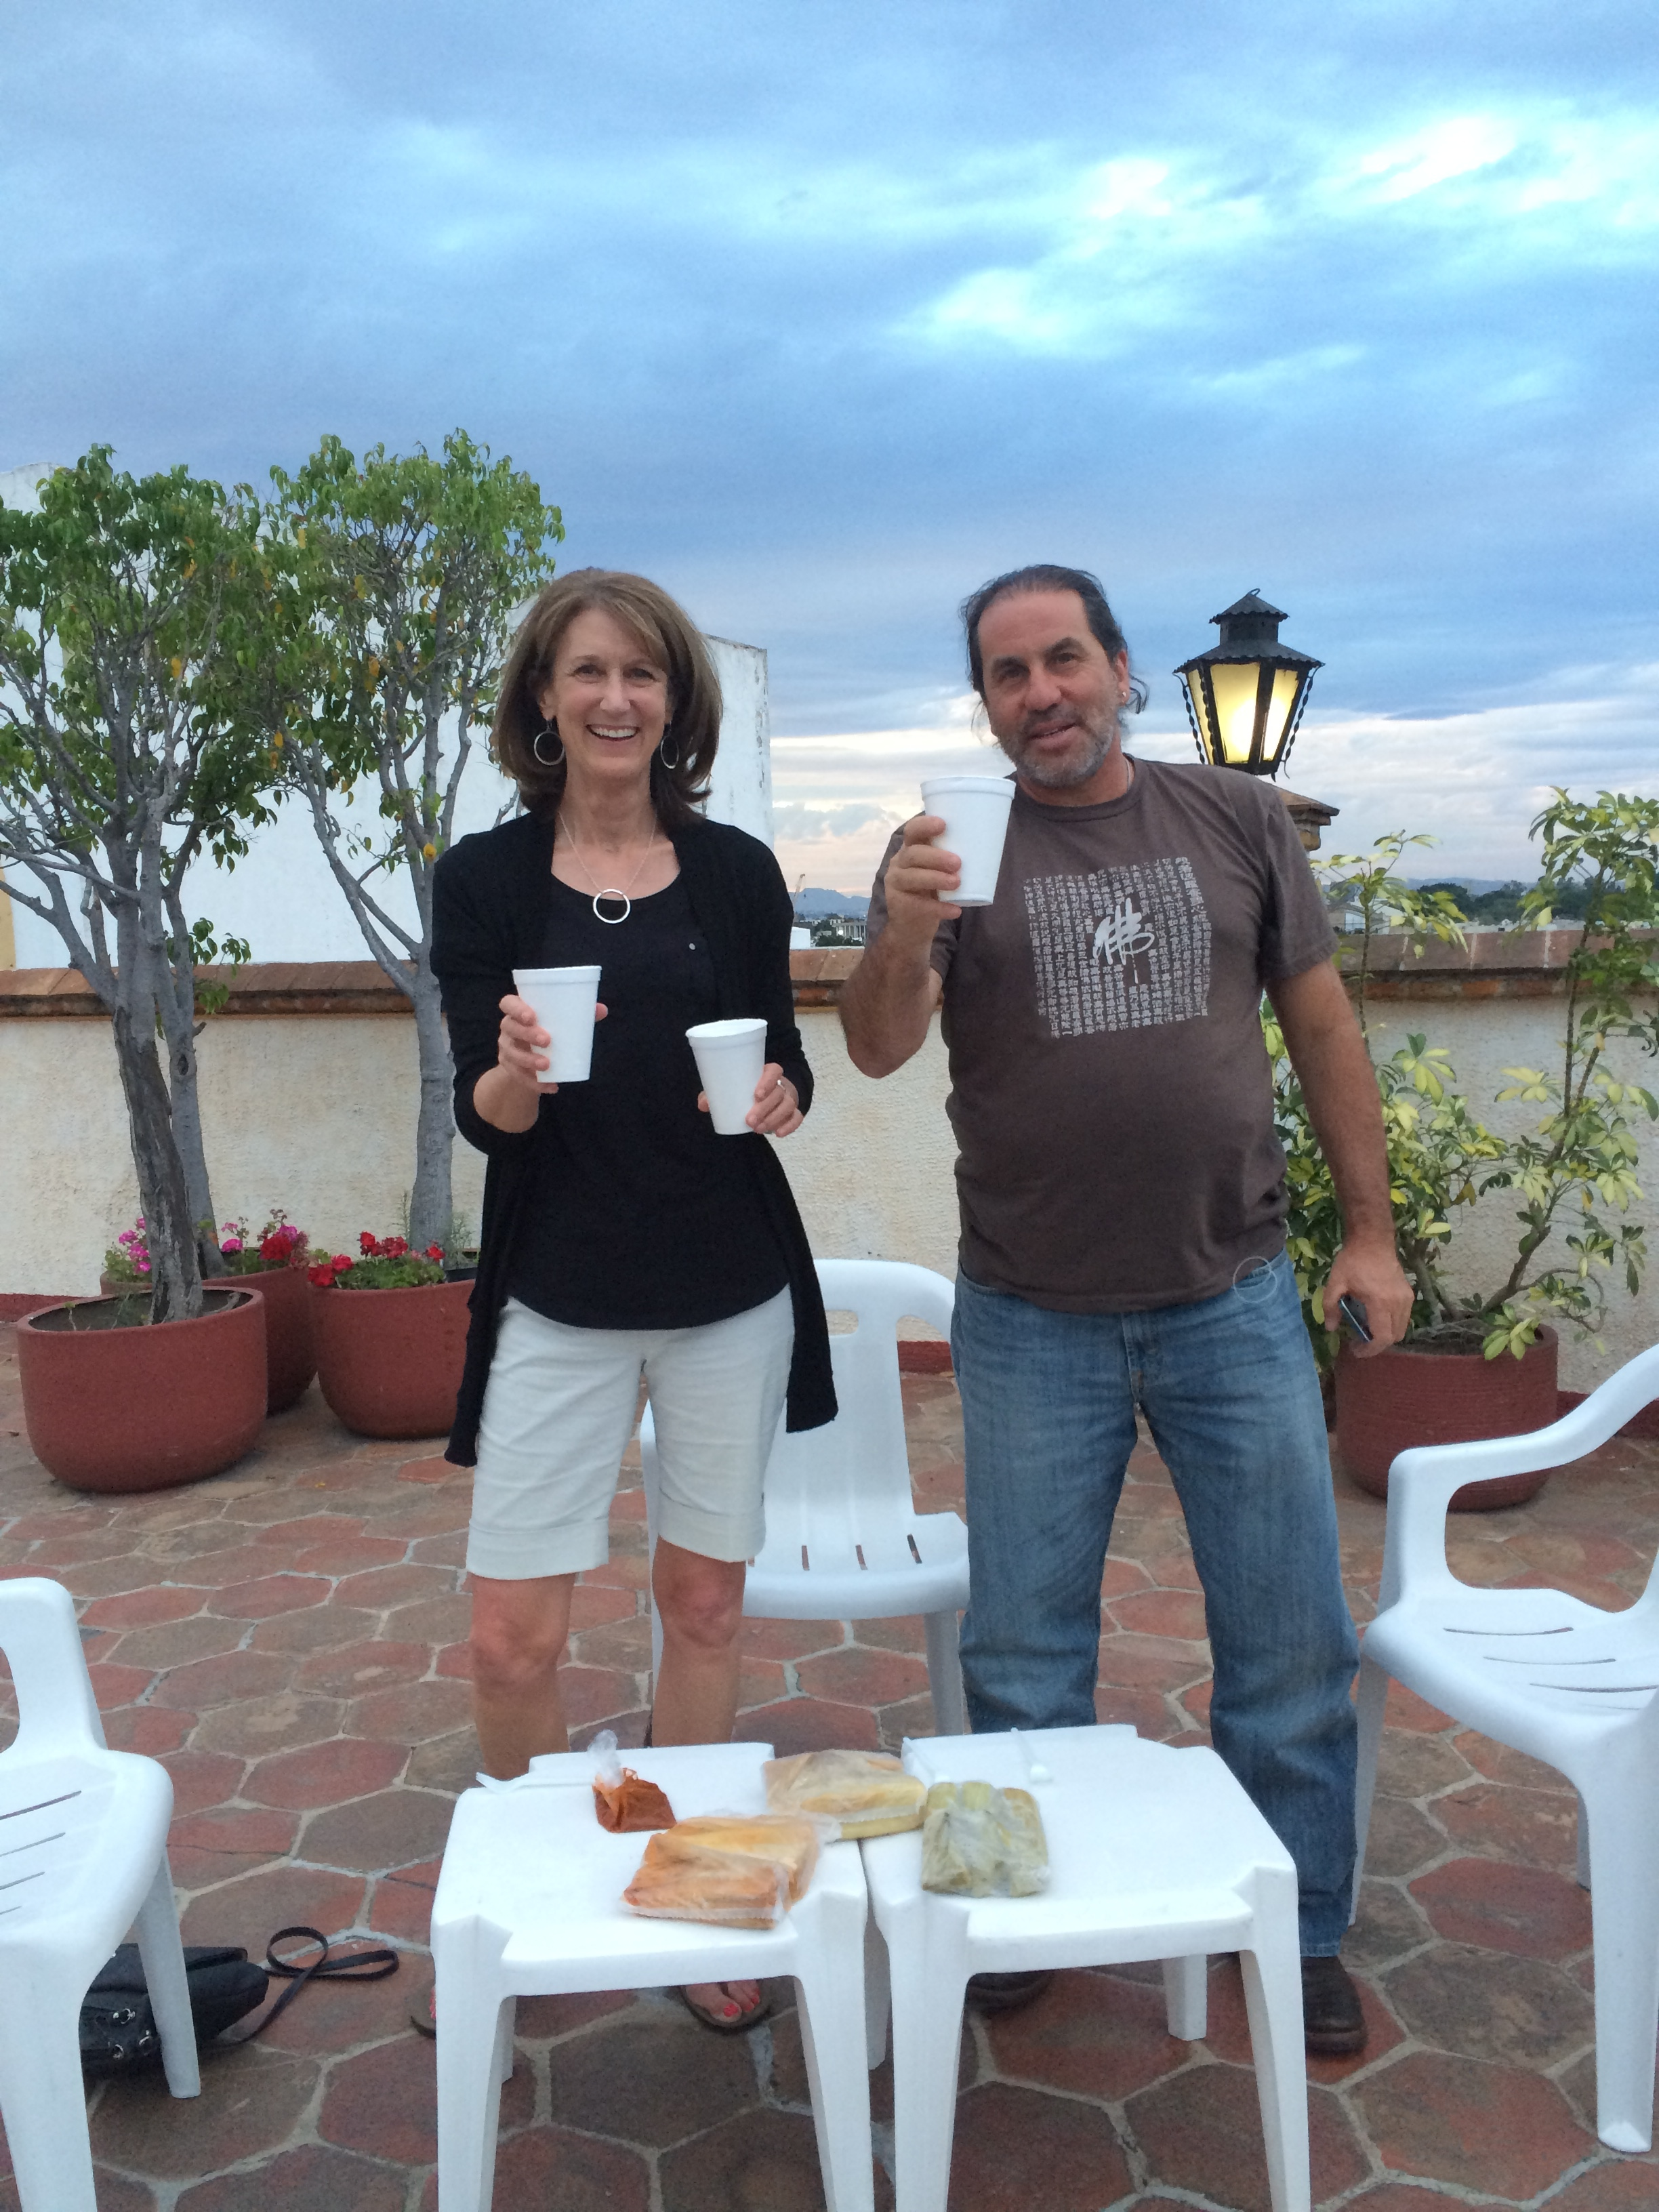 Tamales (that Joaquin personally delivered for us) and margaritas on the hotel roof deck.